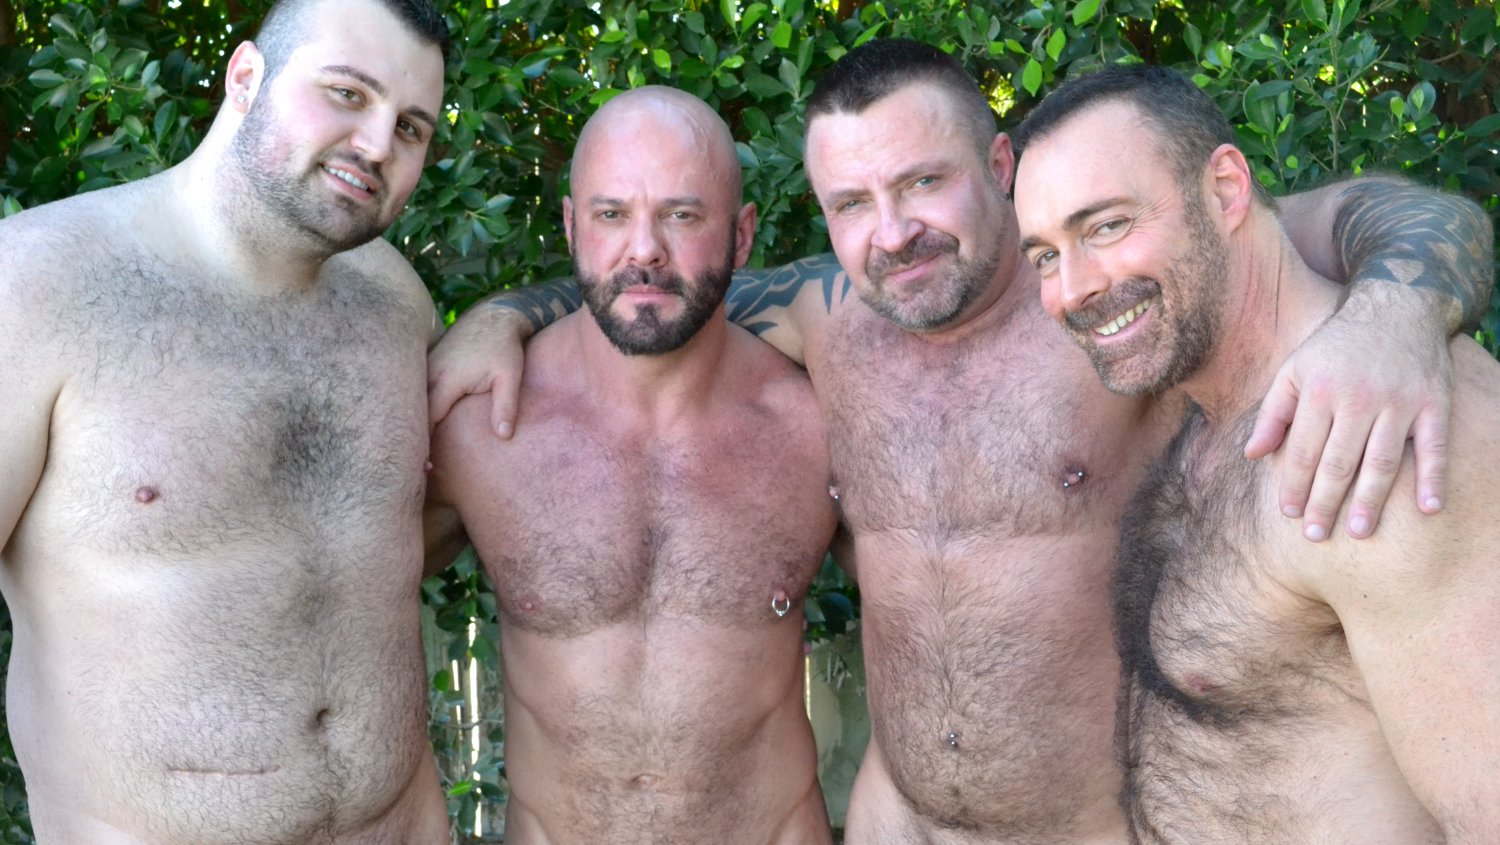 Brad Kalvo, Rex Blue, Marc Angelo and Carlo Cox - BearFilms Want a cool girl in Santo Domingo